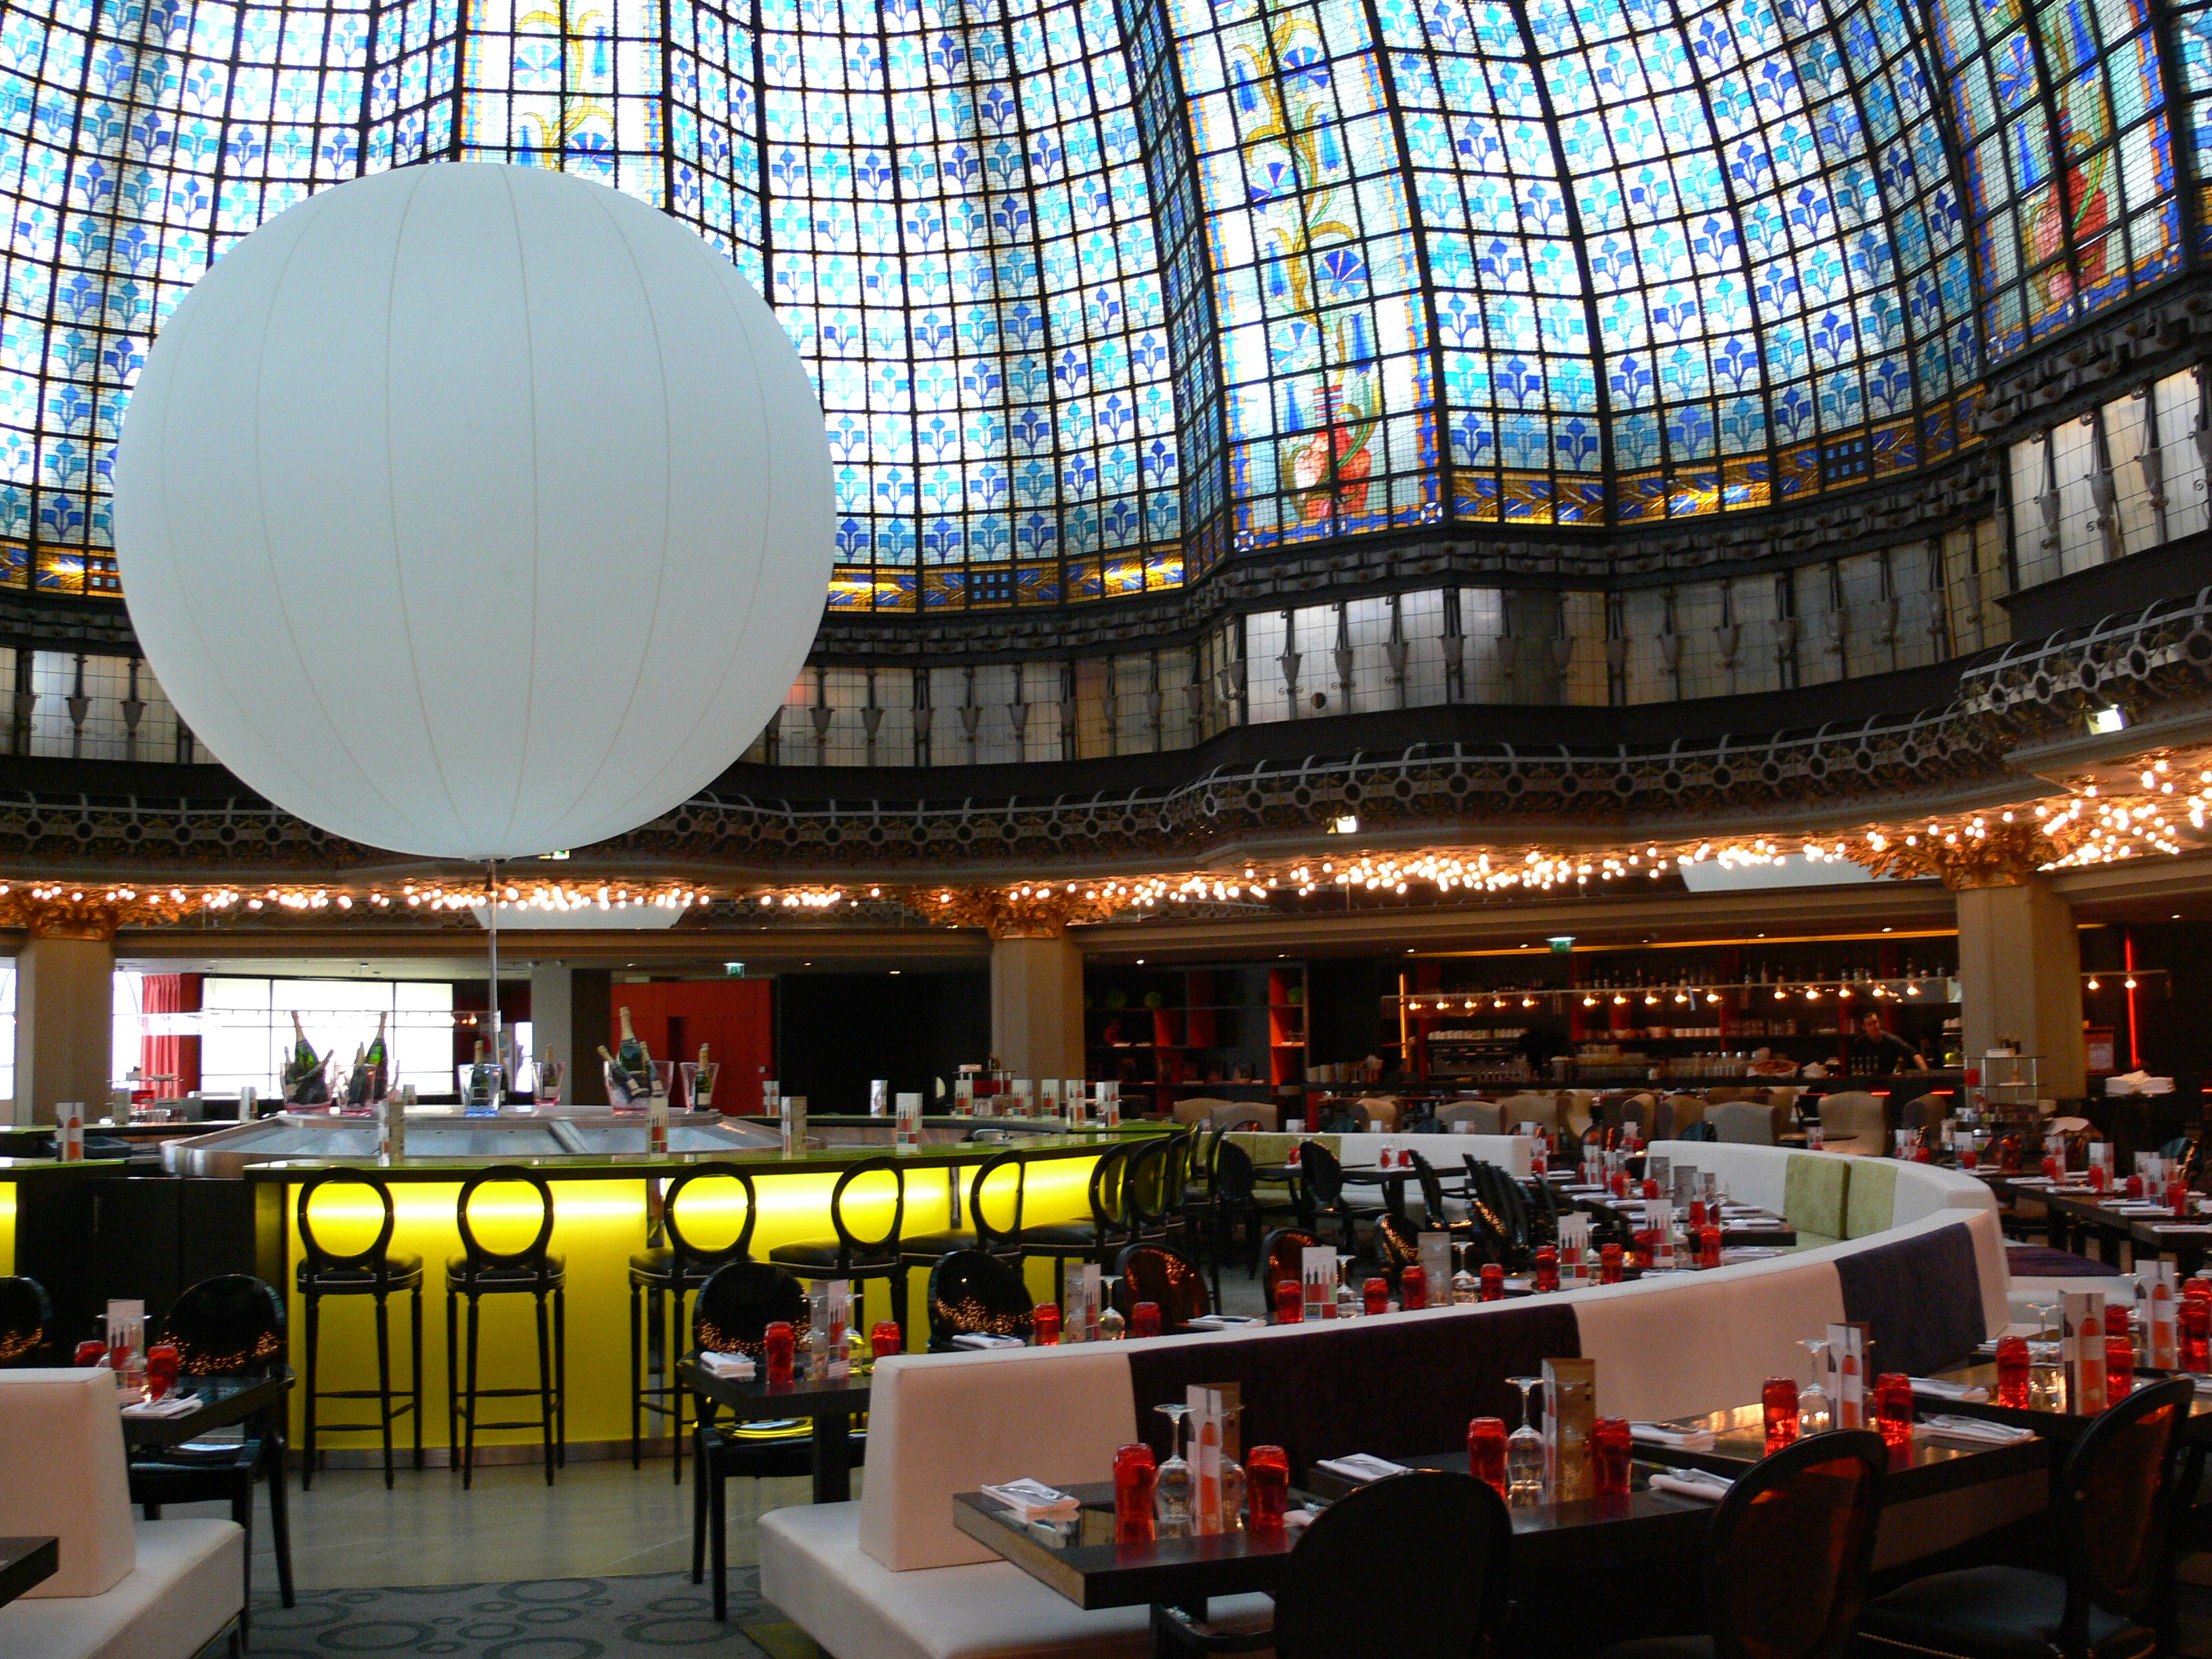 Le Dome Restaurant Paris